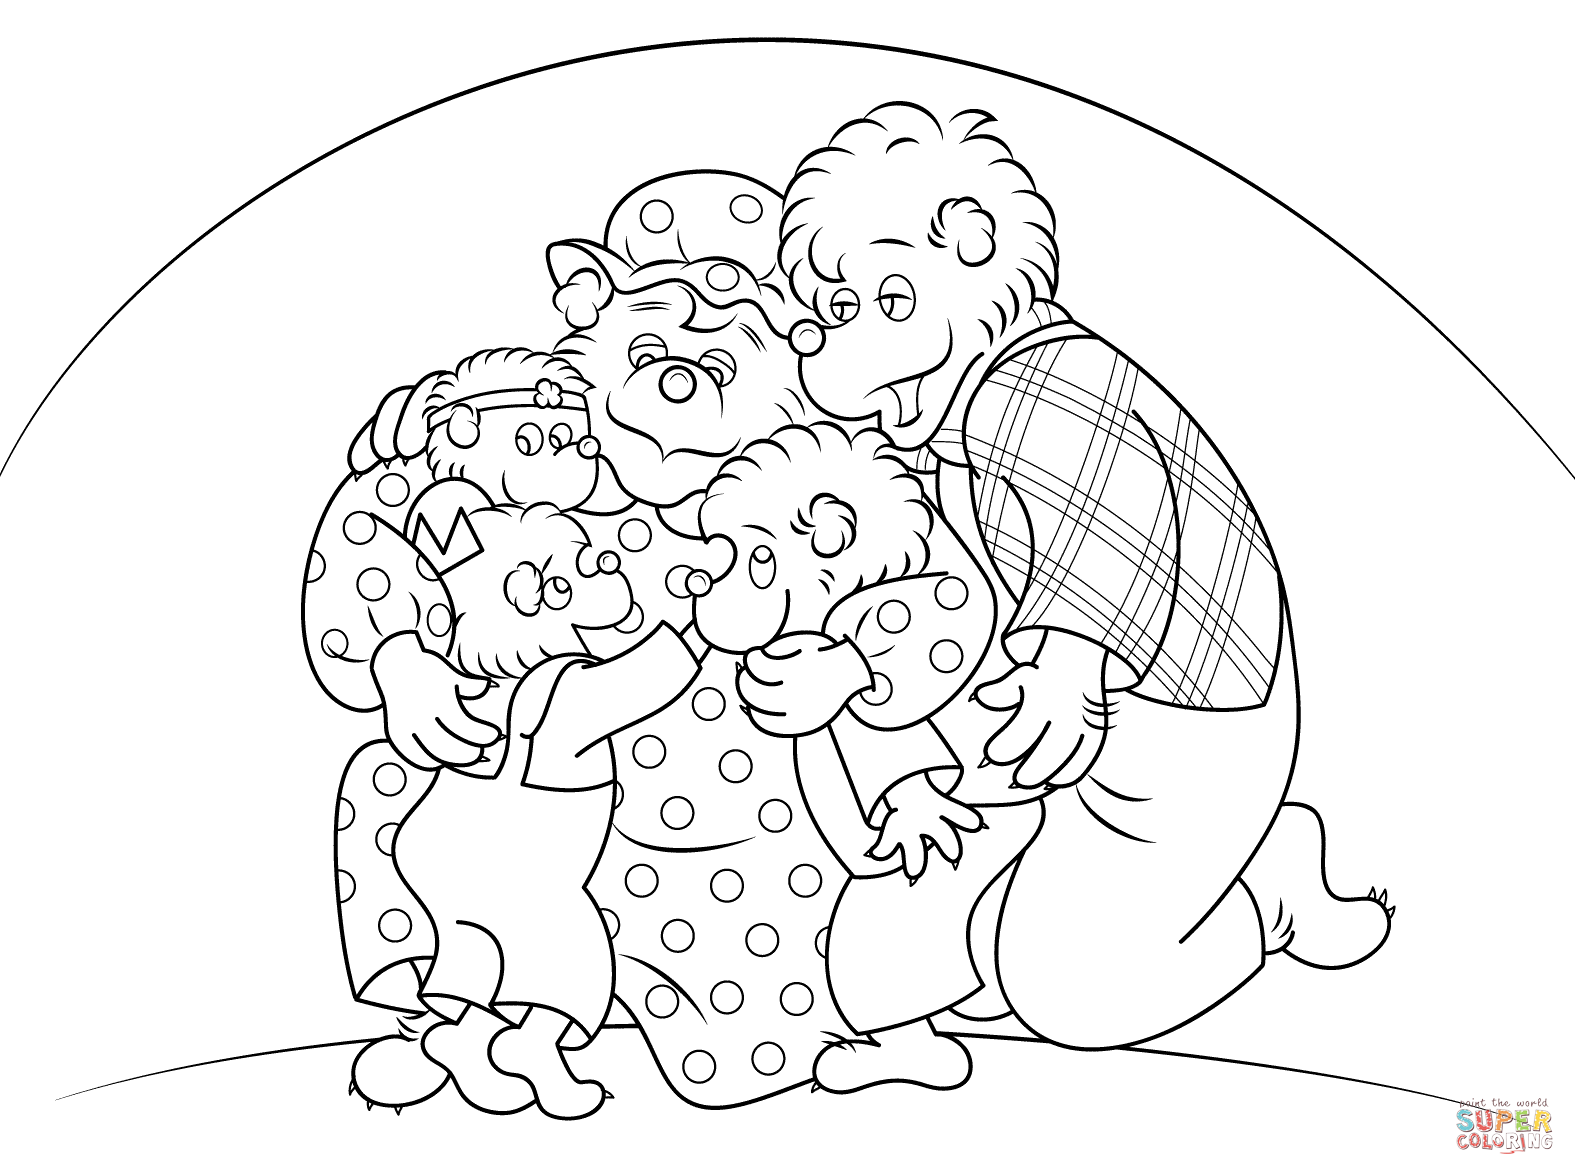 Berenstain Bears Halloween Coloring Pages